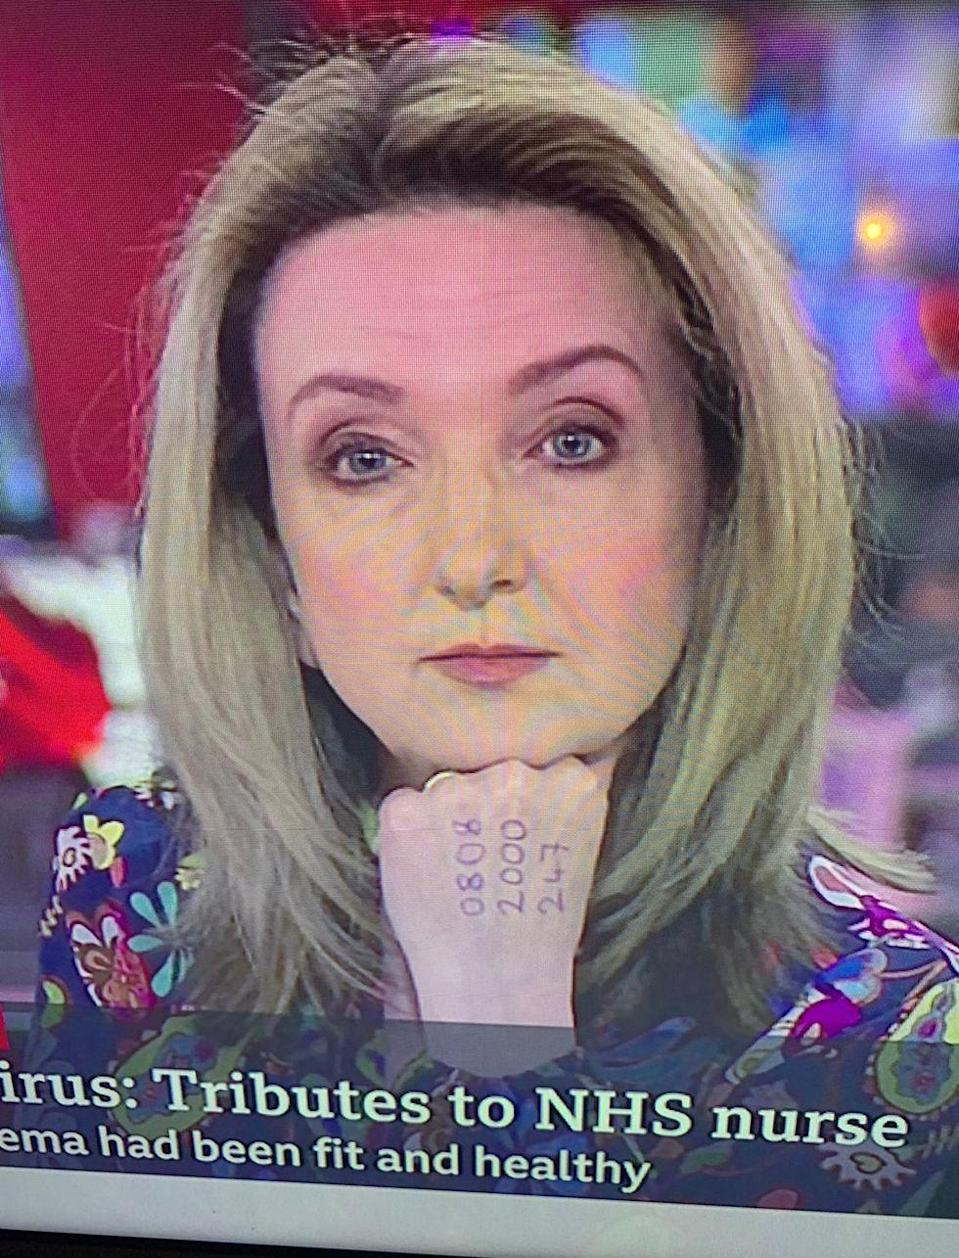 "<p>Presenting BBC News on Monday morning, viewers noticed Victoria Derbyshire had a phone number written on her hand. </p><p>Inscribed was the National Domestic Abuse hotline in the UK - an attempt by the presenter to alert anyone<a href=""https://www.elle.com/uk/life-and-culture/a31779483/coronavirus-self-isolation-domestic-violence/"" rel=""nofollow noopener"" target=""_blank"" data-ylk=""slk:trapped at home with a violent or controlling partner"" class=""link rapid-noclick-resp""> trapped at home with a violent or controlling partner </a>to the helpline for support.</p><p>Sharing a picture of her hand on Instagram ahead of appearing on the news, Derbyshire wrote that there has been an 150% increase on visitors to the hotline's website and 25% increase in calls to the hotline since lockdown.</p><p>The presenter was <a href=""https://twitter.com/VictimsComm/status/1247155353000628225?s=20"" rel=""nofollow noopener"" target=""_blank"" data-ylk=""slk:overwhelmingly praised online"" class=""link rapid-noclick-resp"">overwhelmingly praised online</a> for the move.</p>"